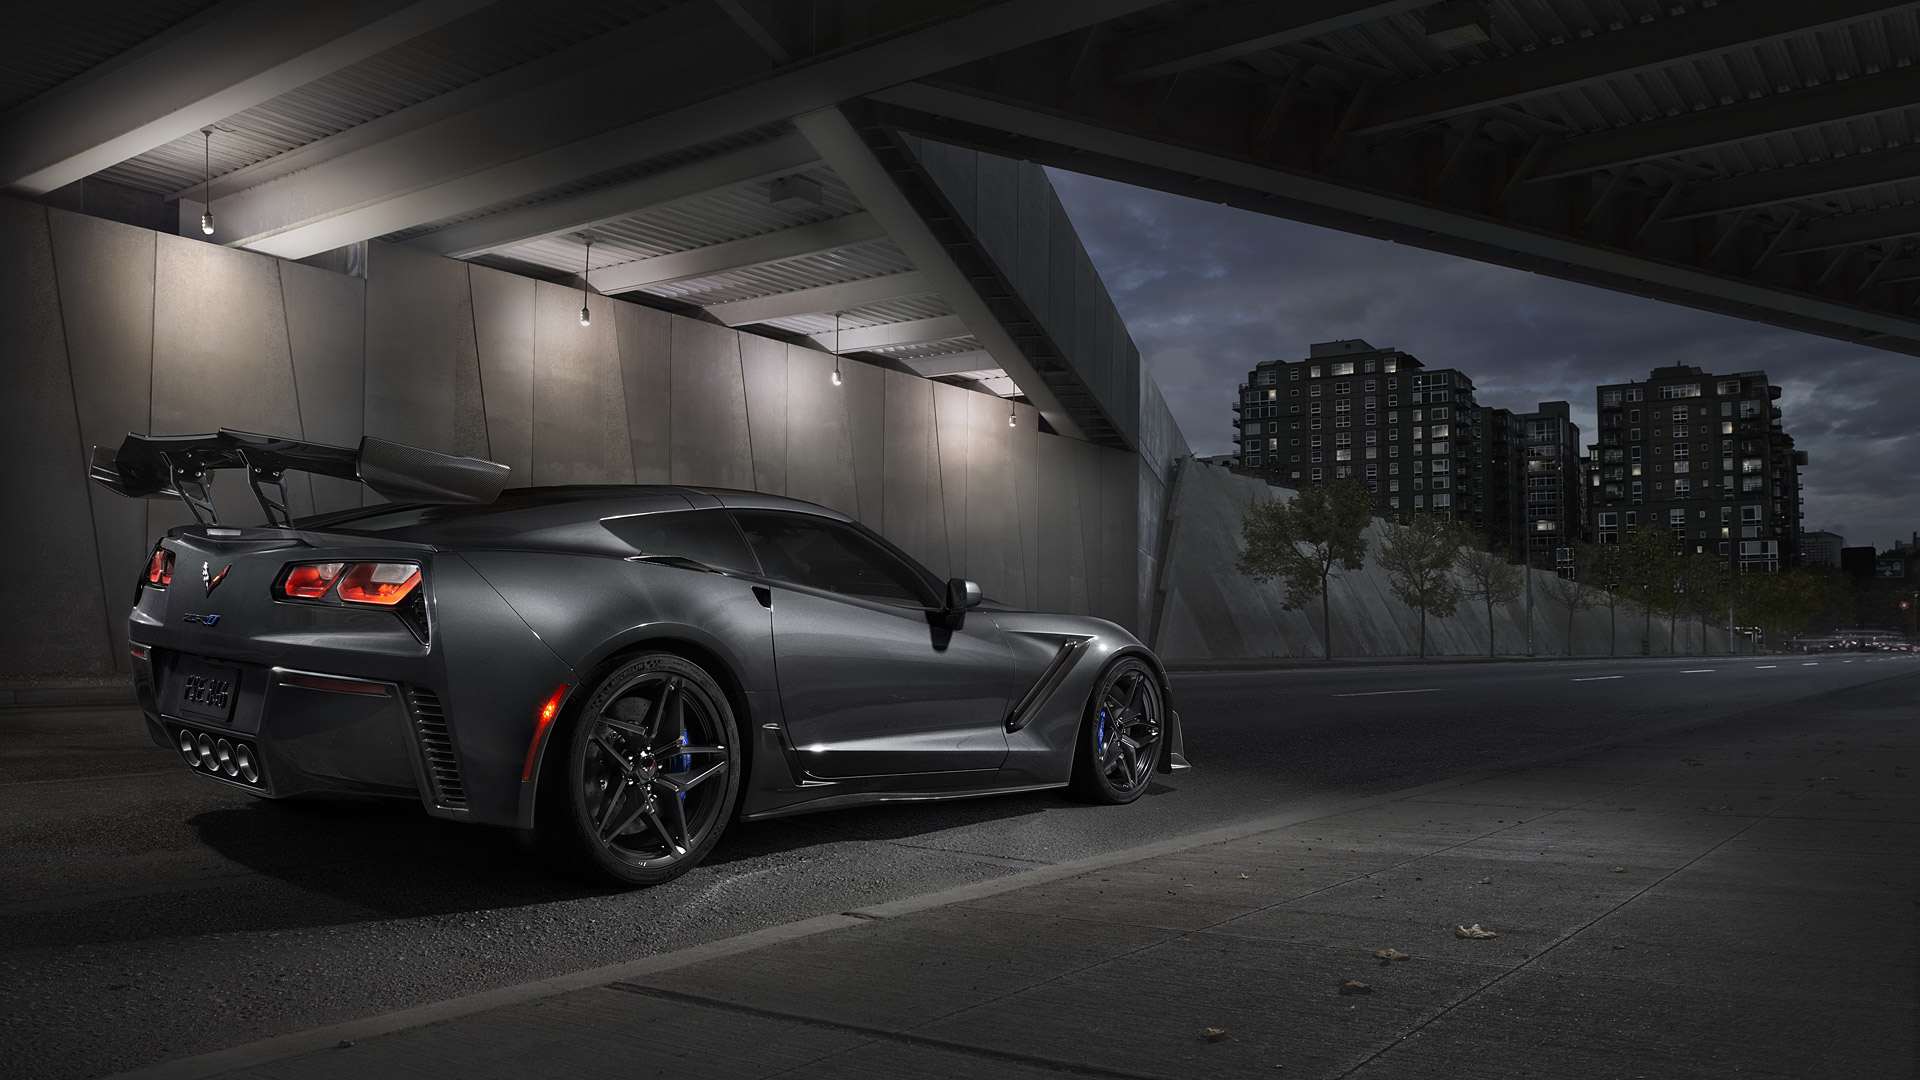 2019 Chevrolet Corvette ZR1 Wallpapers HD Images   WSupercars 1920x1080